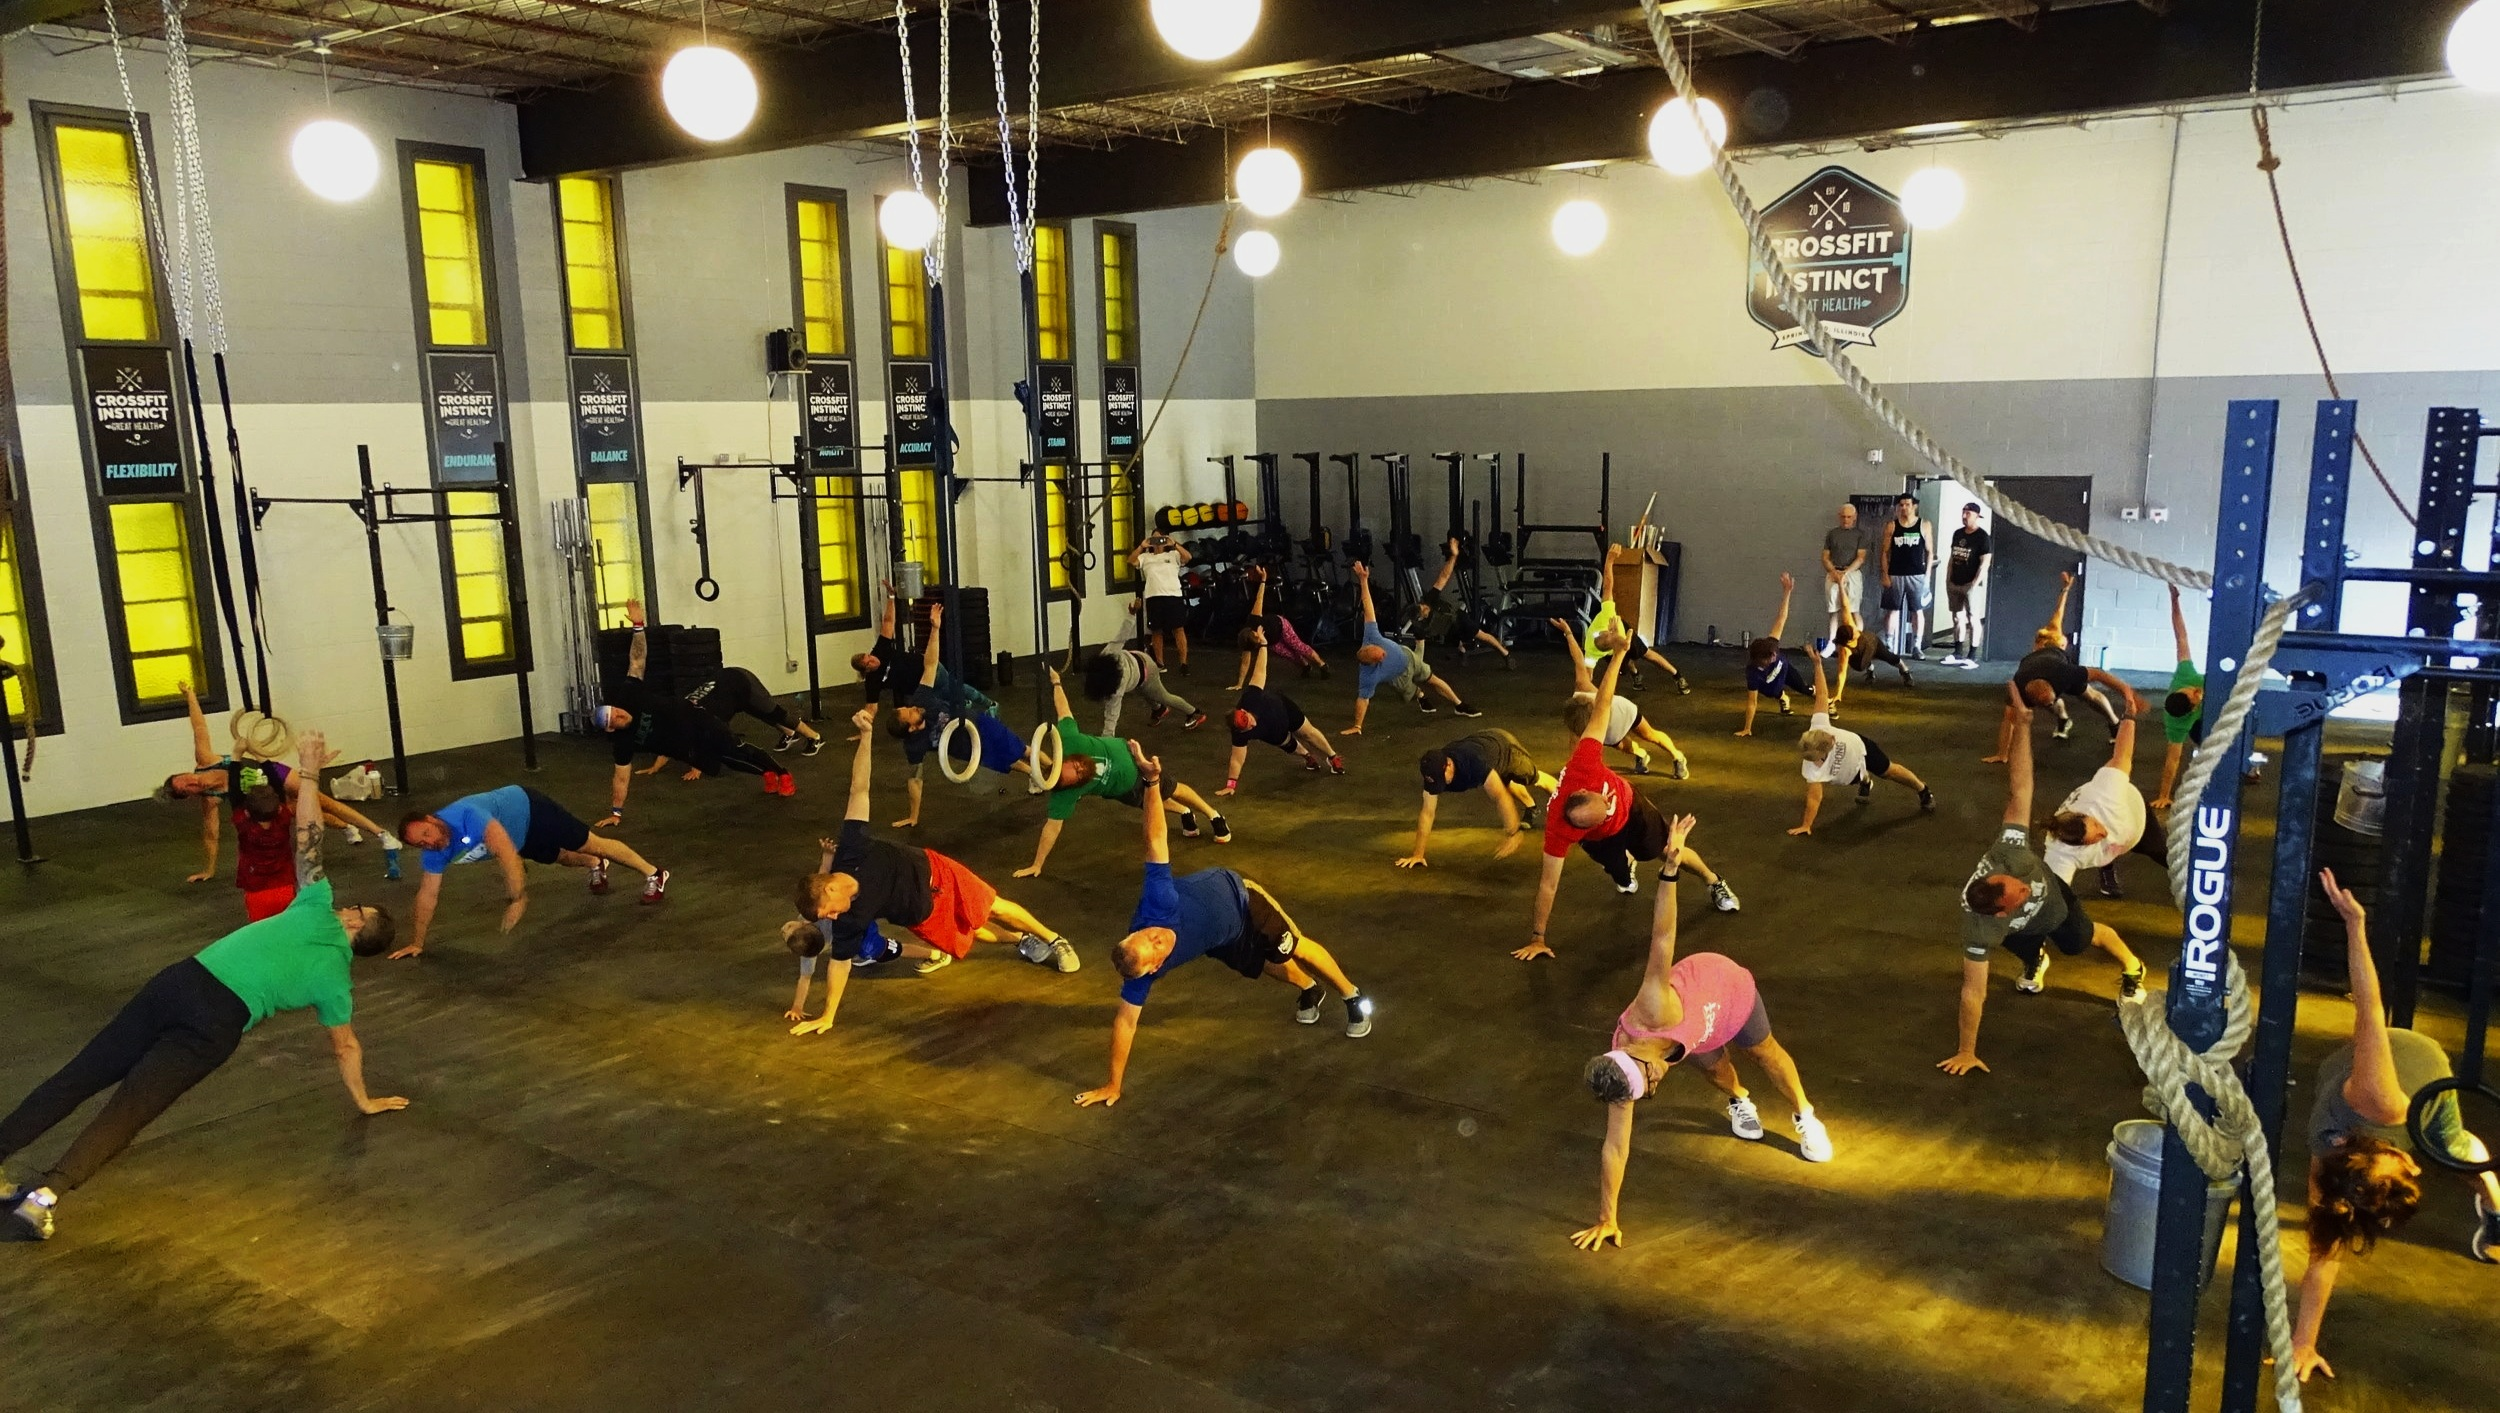 A Place for Everyone - Bring your children, get your parents in better shape, take your own health to the next level, and more. Our doors are open to all: beginners, advanced athletes, young, mature, limited, etc. Come join our family today.